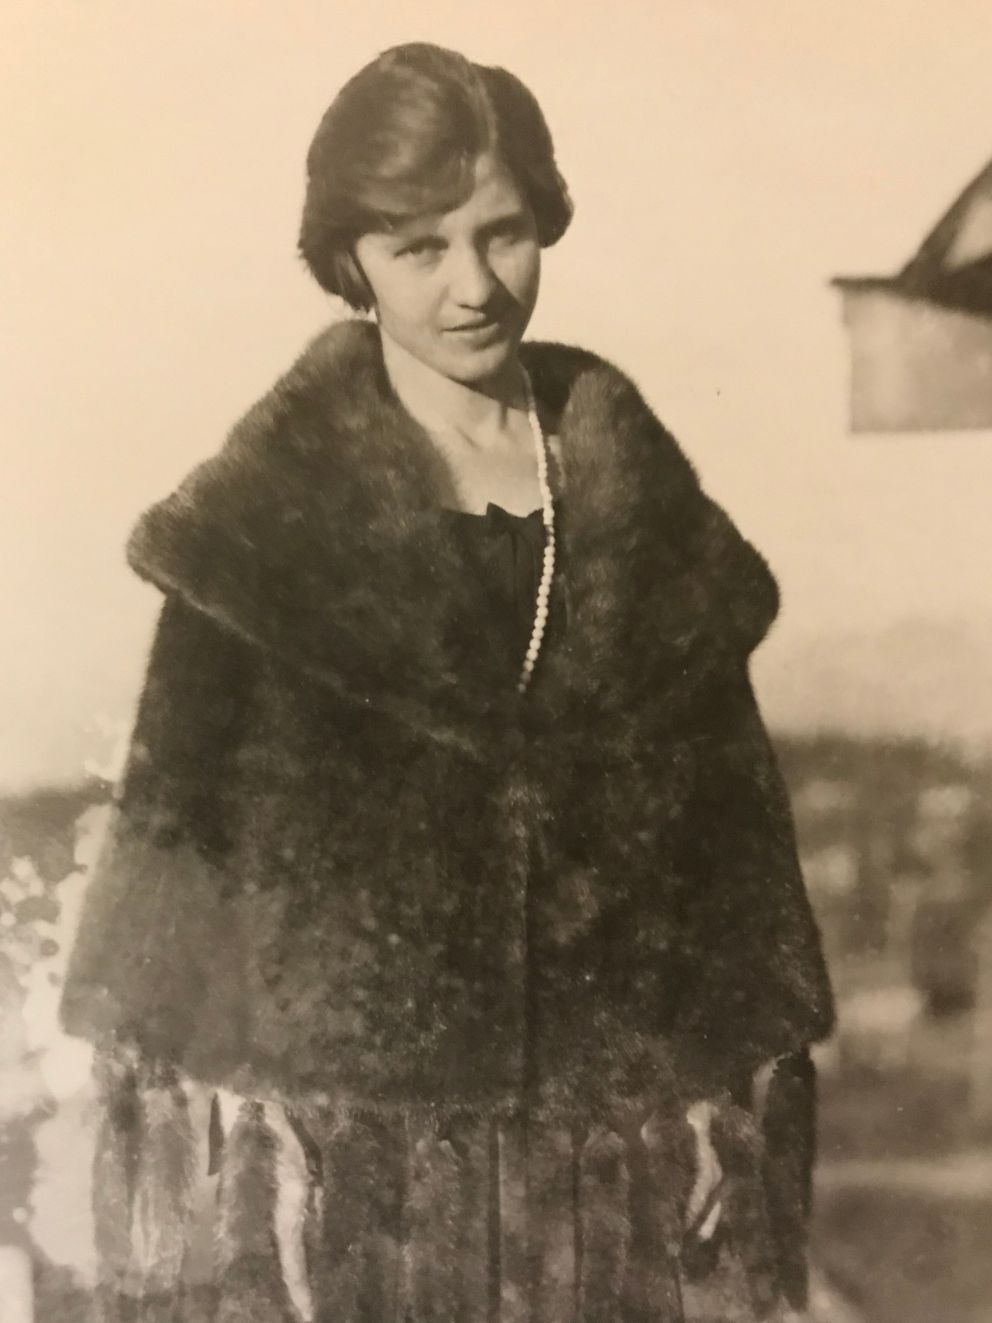 Dorothea Hervey, 1921. Juliana Osinchuk is representing her in the 2021 concert. (Photo courtesy of the family of Dorothea Hervey, Shannon Hervey)